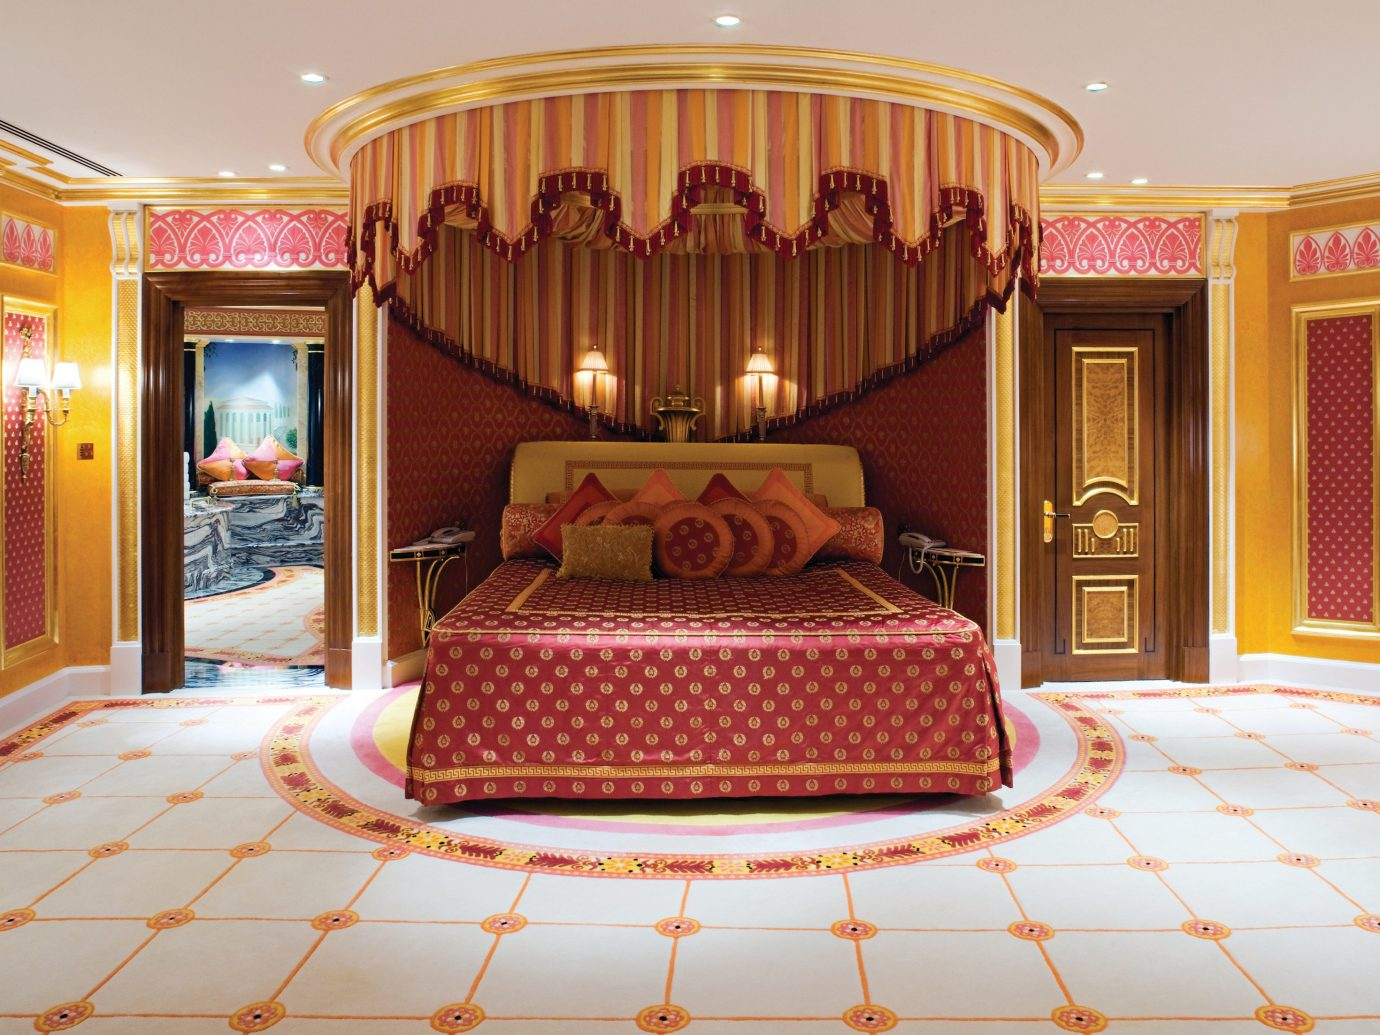 Dubai Hotels Luxury Travel Middle East indoor room interior design bed ceiling wall furniture Suite Bedroom function hall flooring decorated